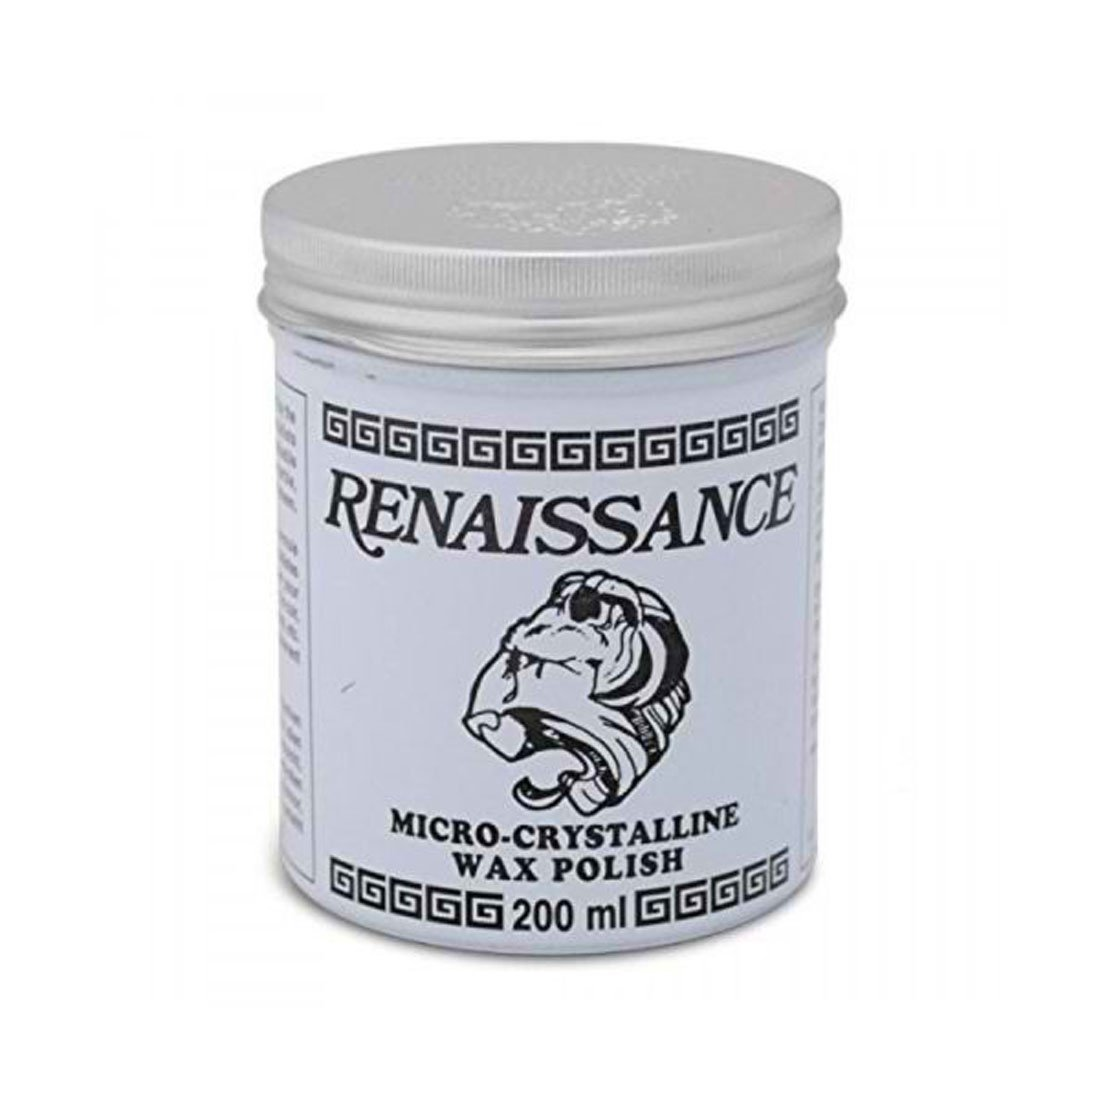 NEW Renaissance Wax 200ml, Protects Furniture, Leather, Marble, Metal, & Paintings by Unknown (Image #1)